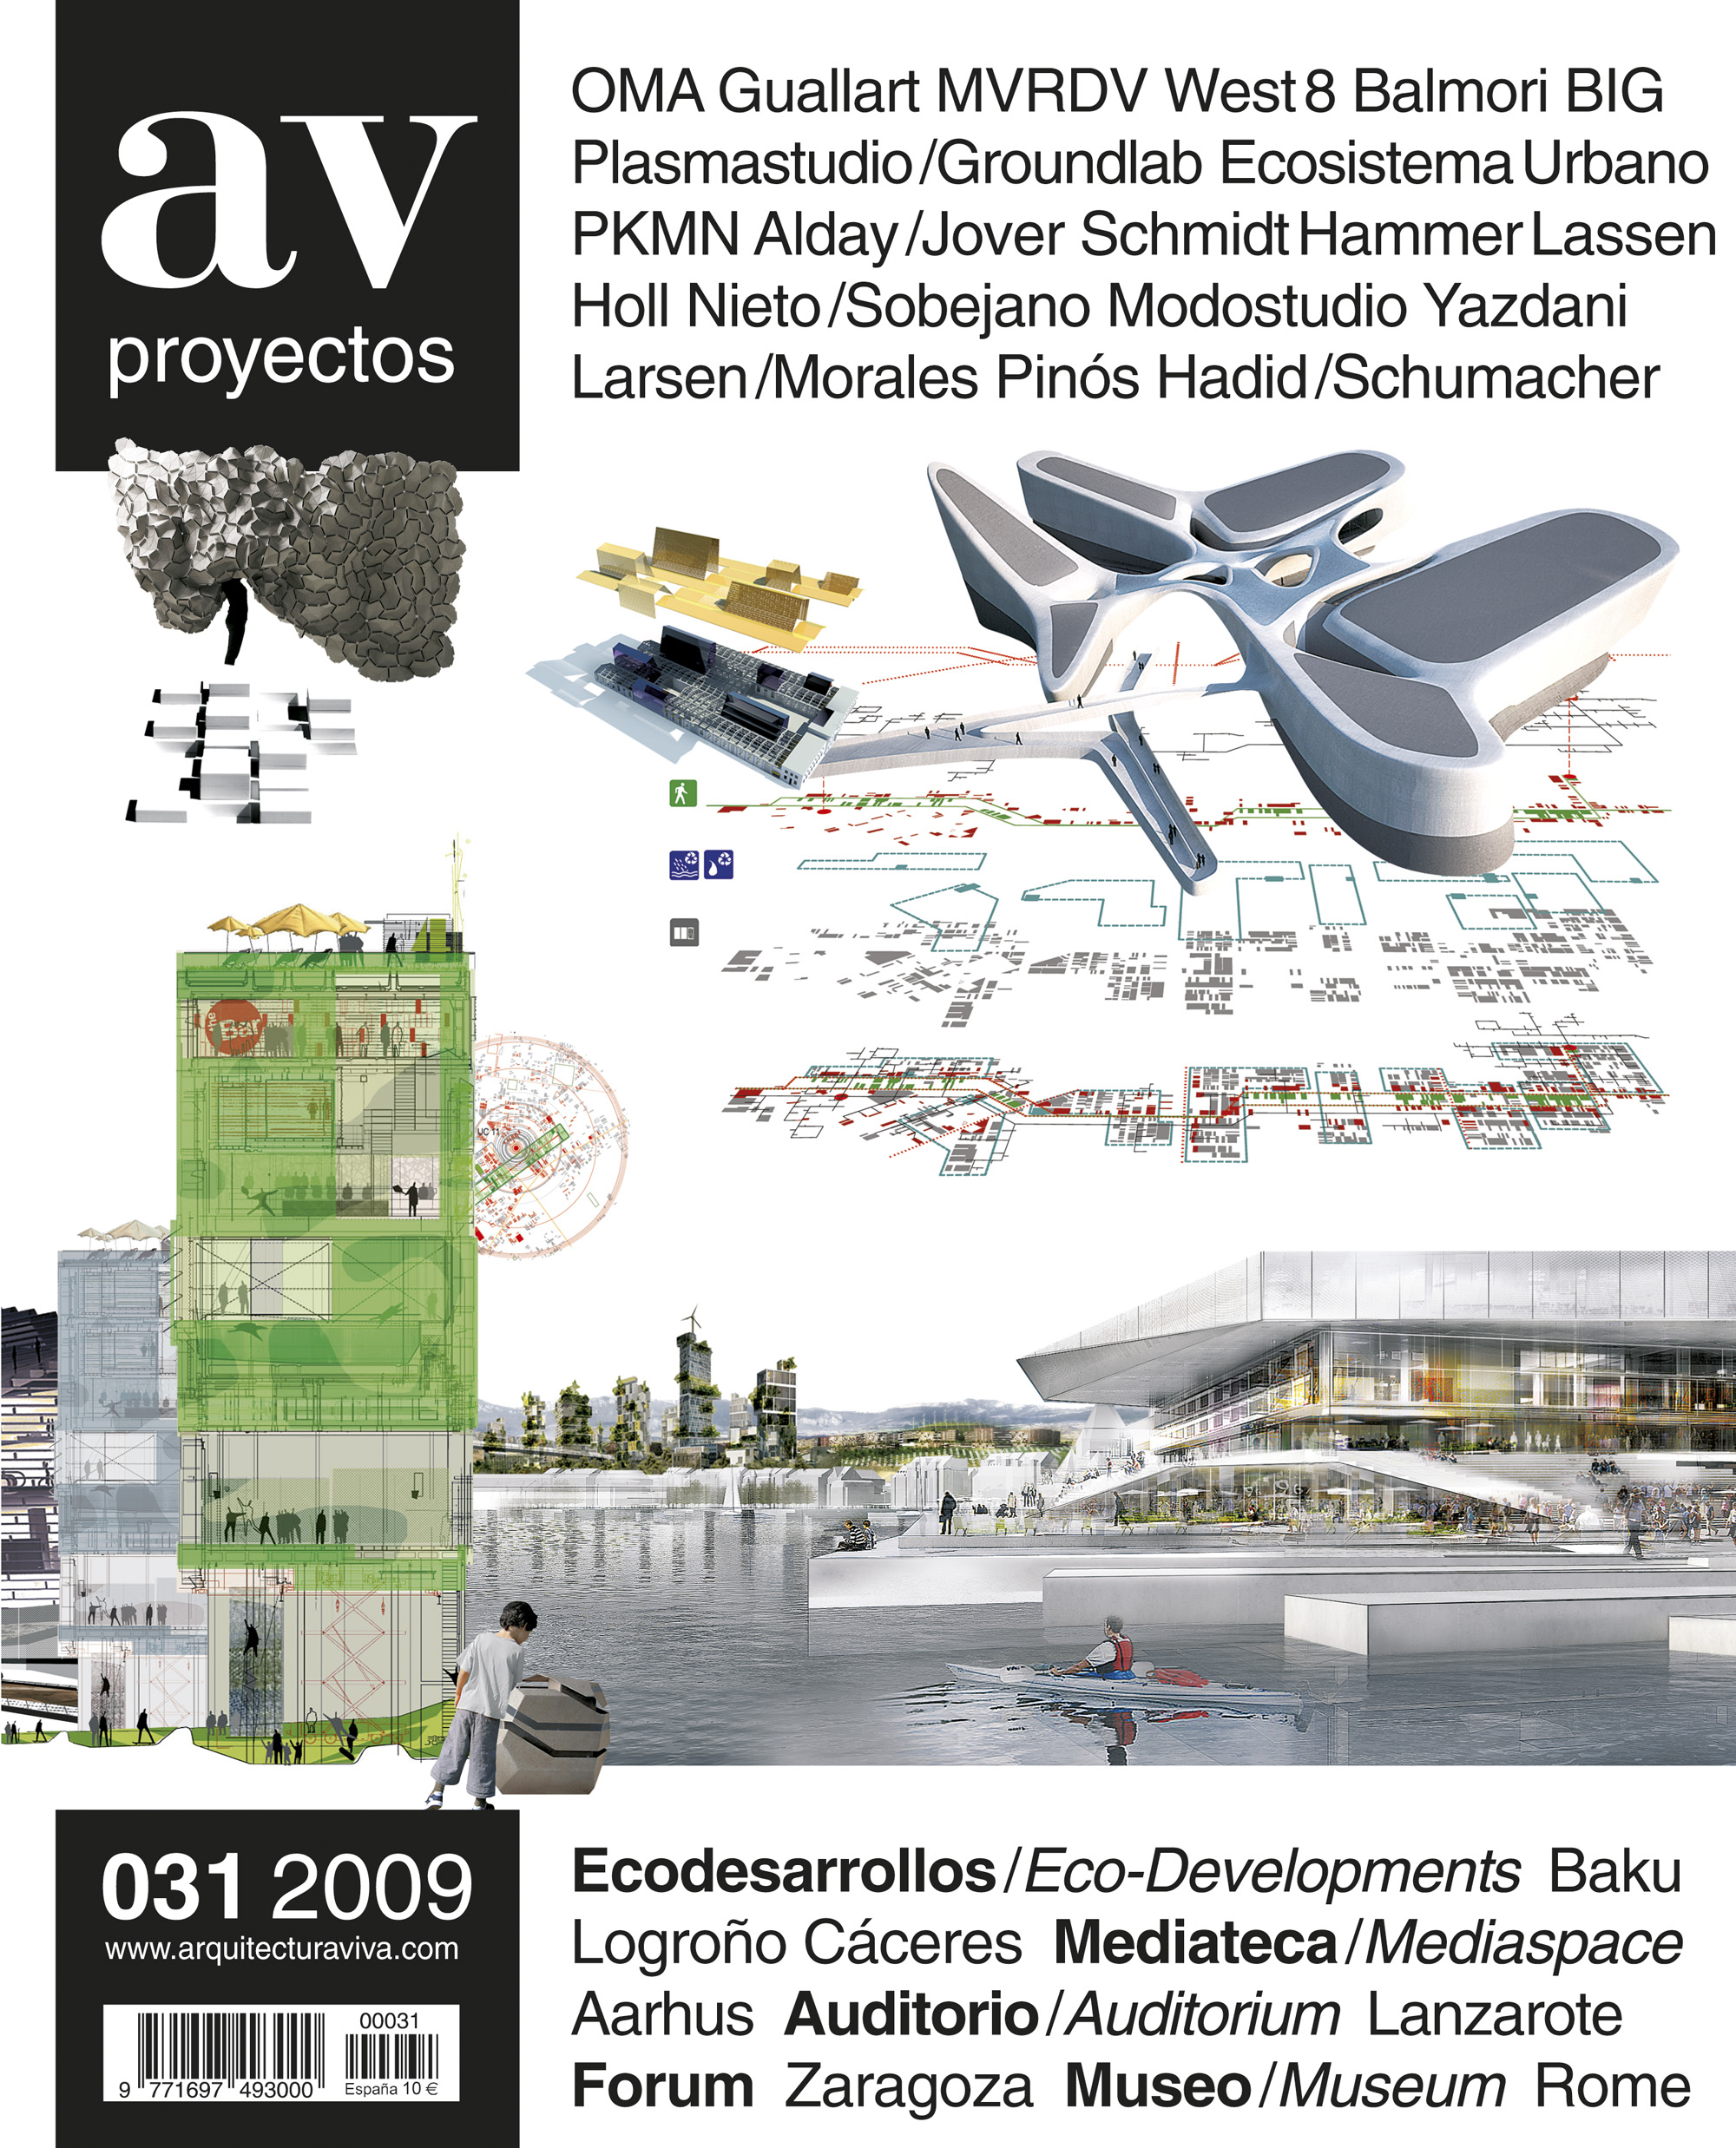 Eco-Developments